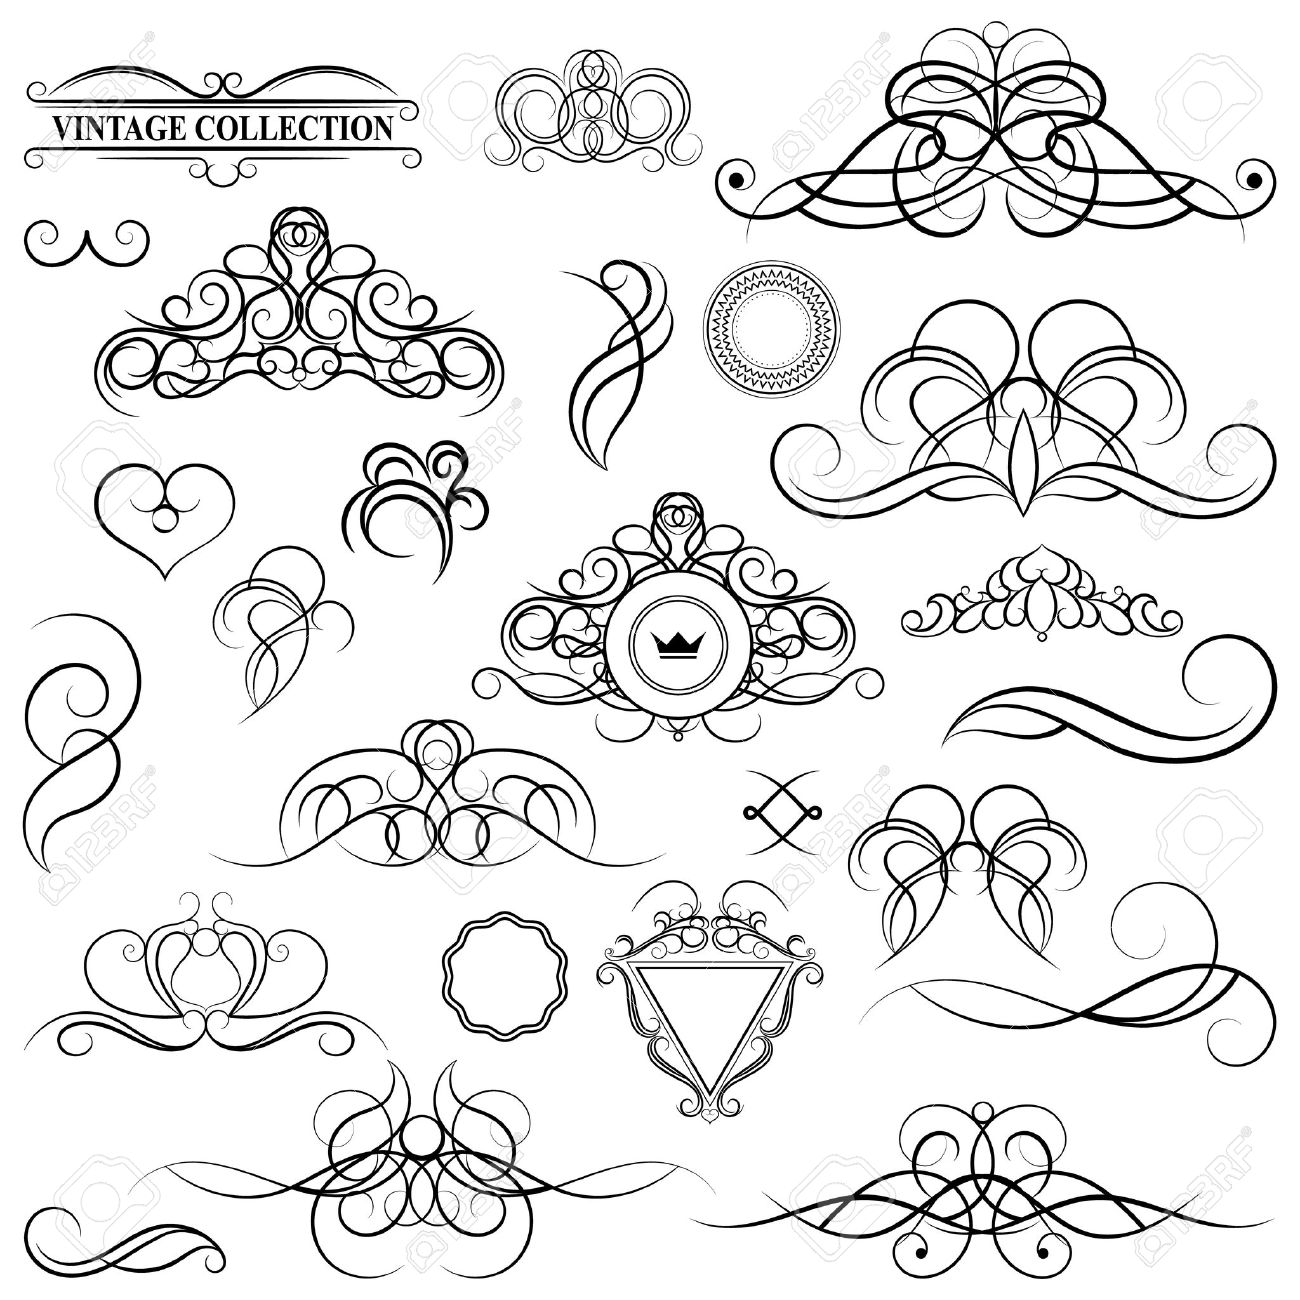 1300x1300 Vintage Set Decor Elements. Elegance Old Hand Drawing Set. Ornate